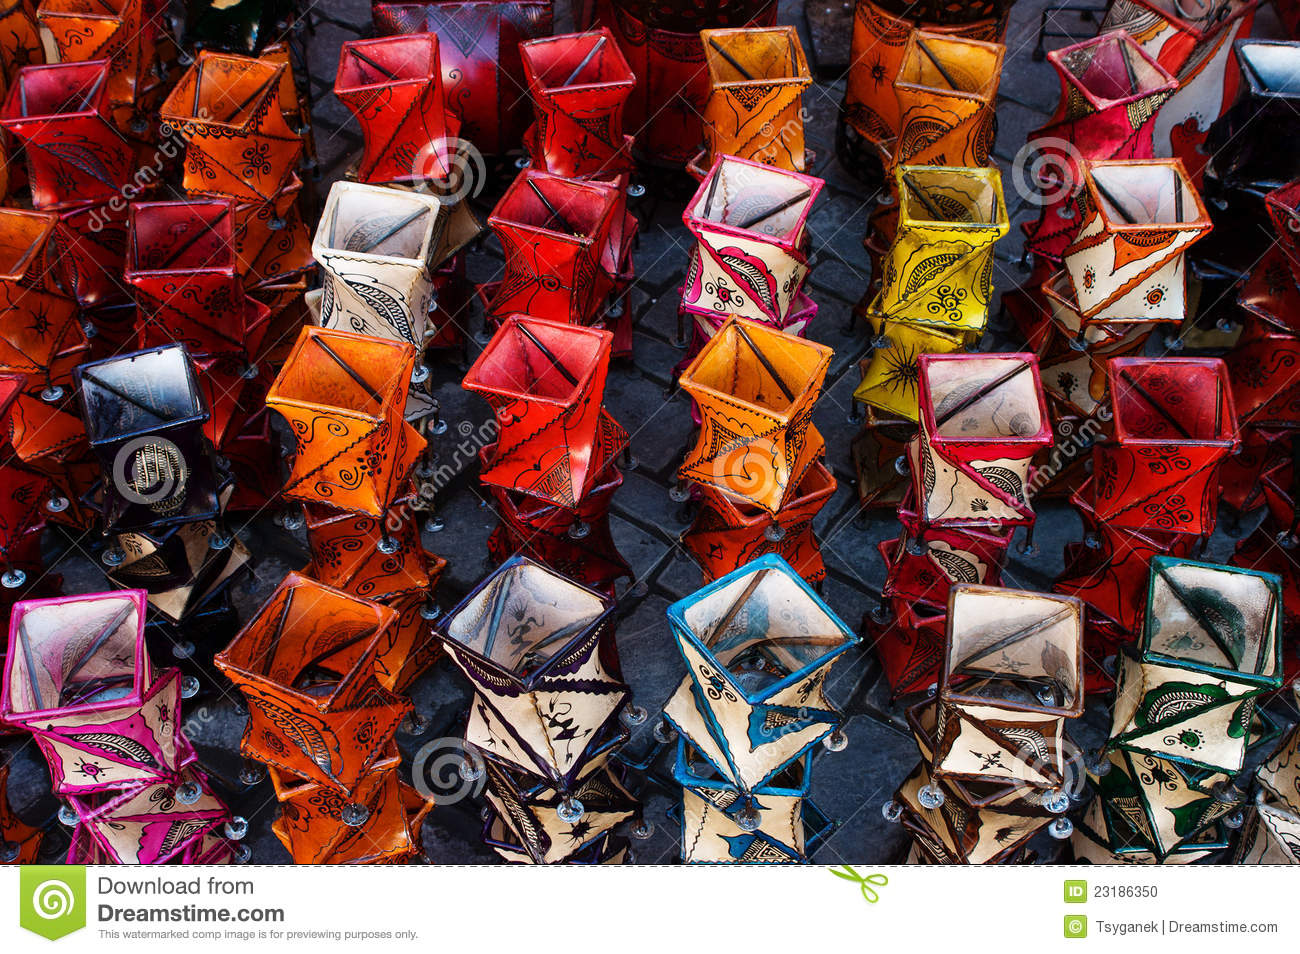 Candle Holders On Market In Marrakesh Stock Photo - Image of